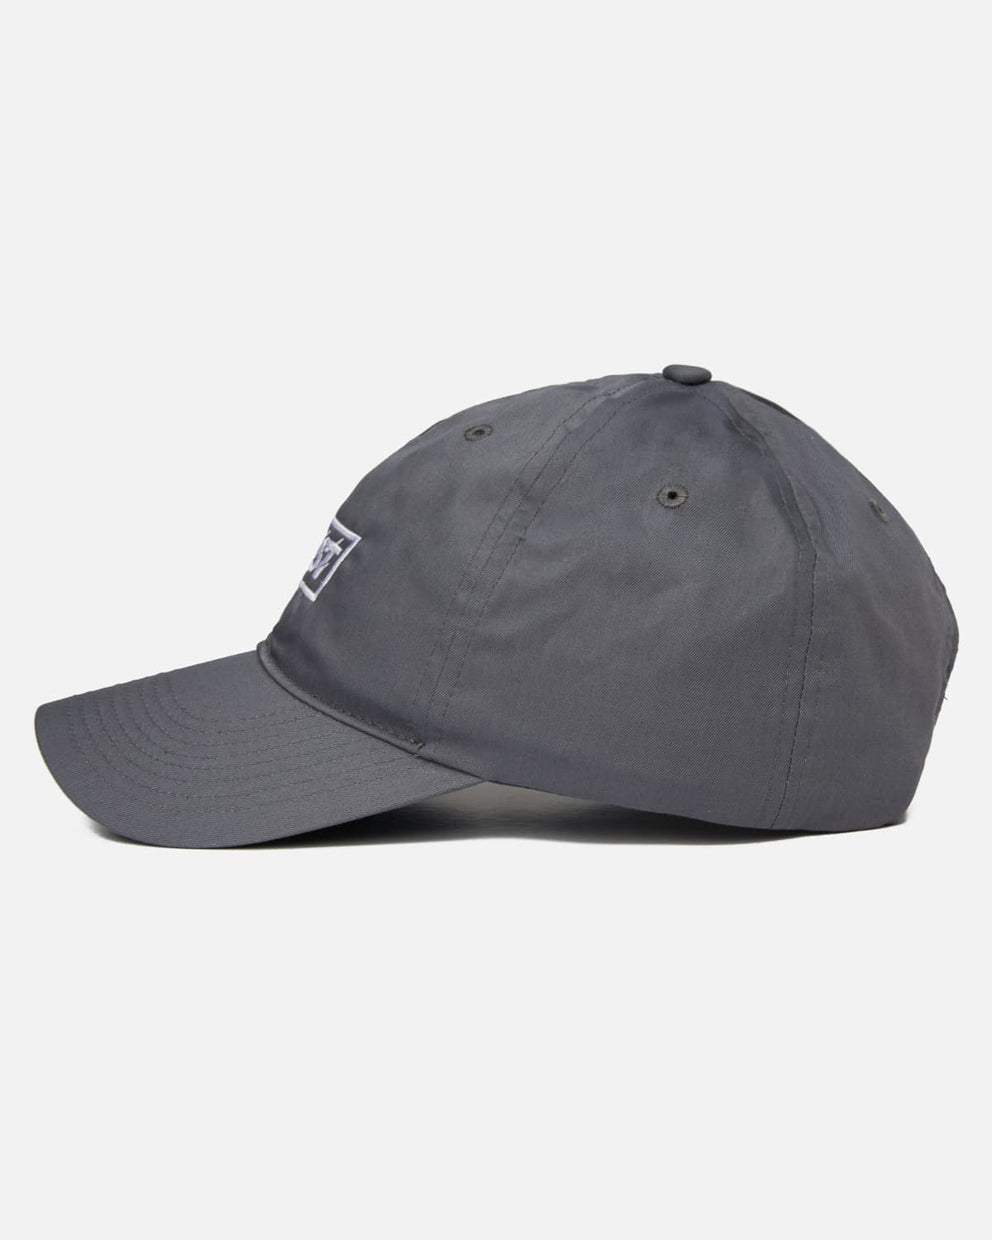 'Beast' Nike Dad Hat - Dark Grey